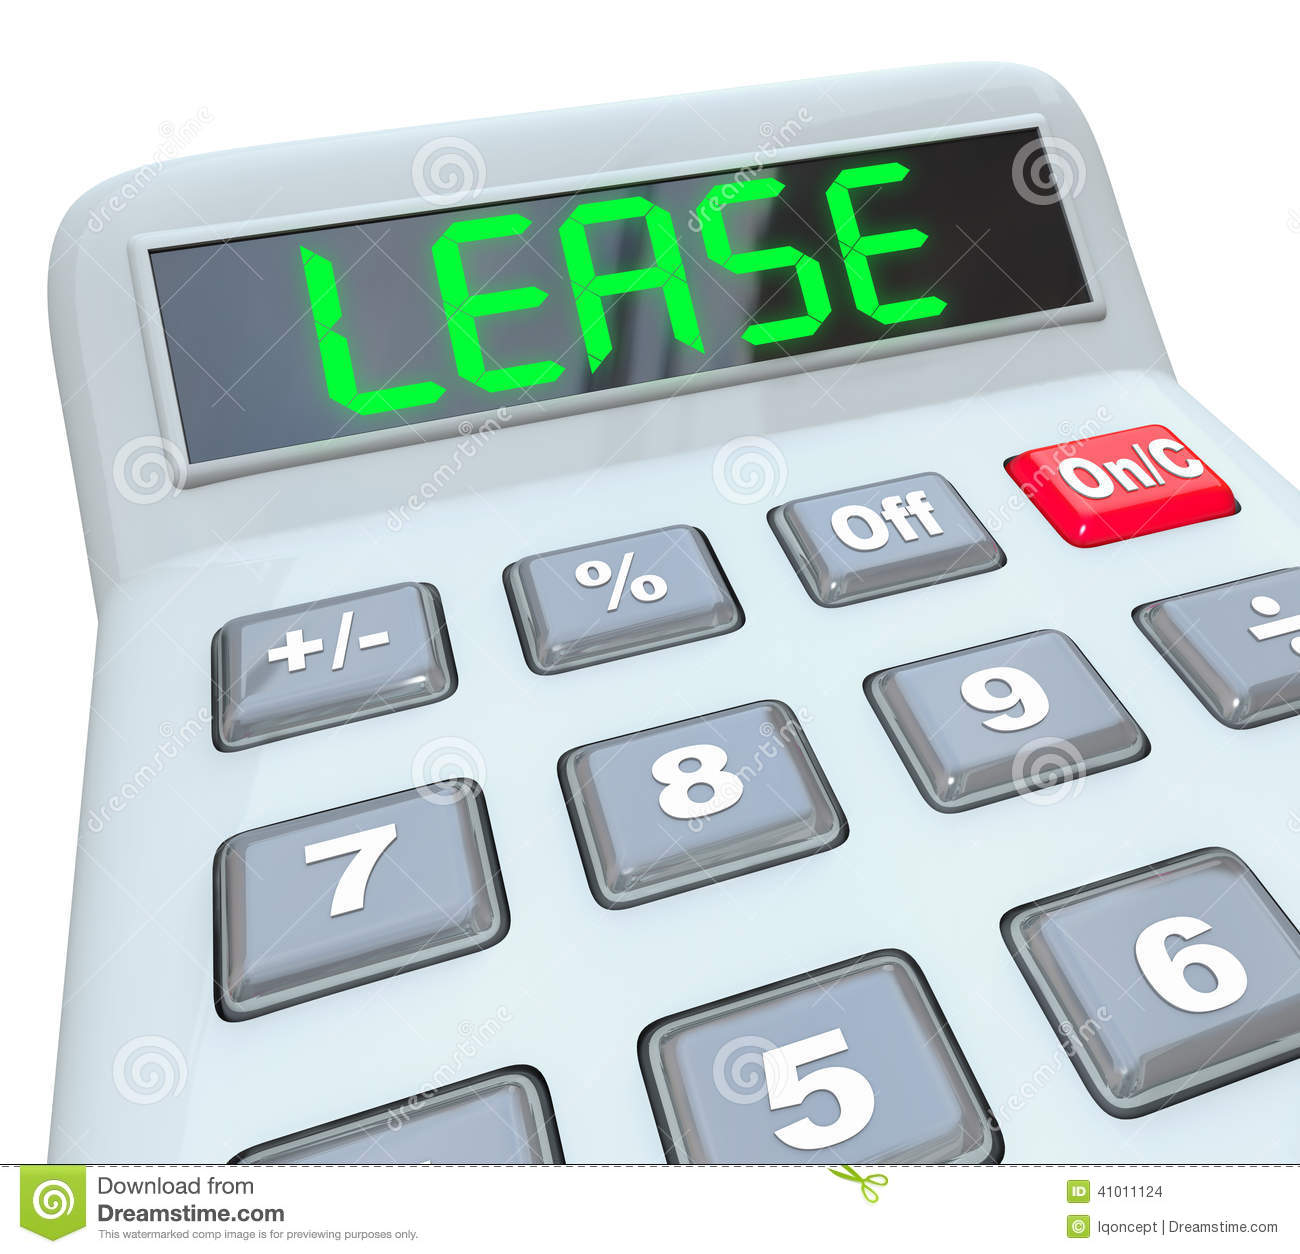 Lease Word Calculator Compare Buying Vs Leasing Better